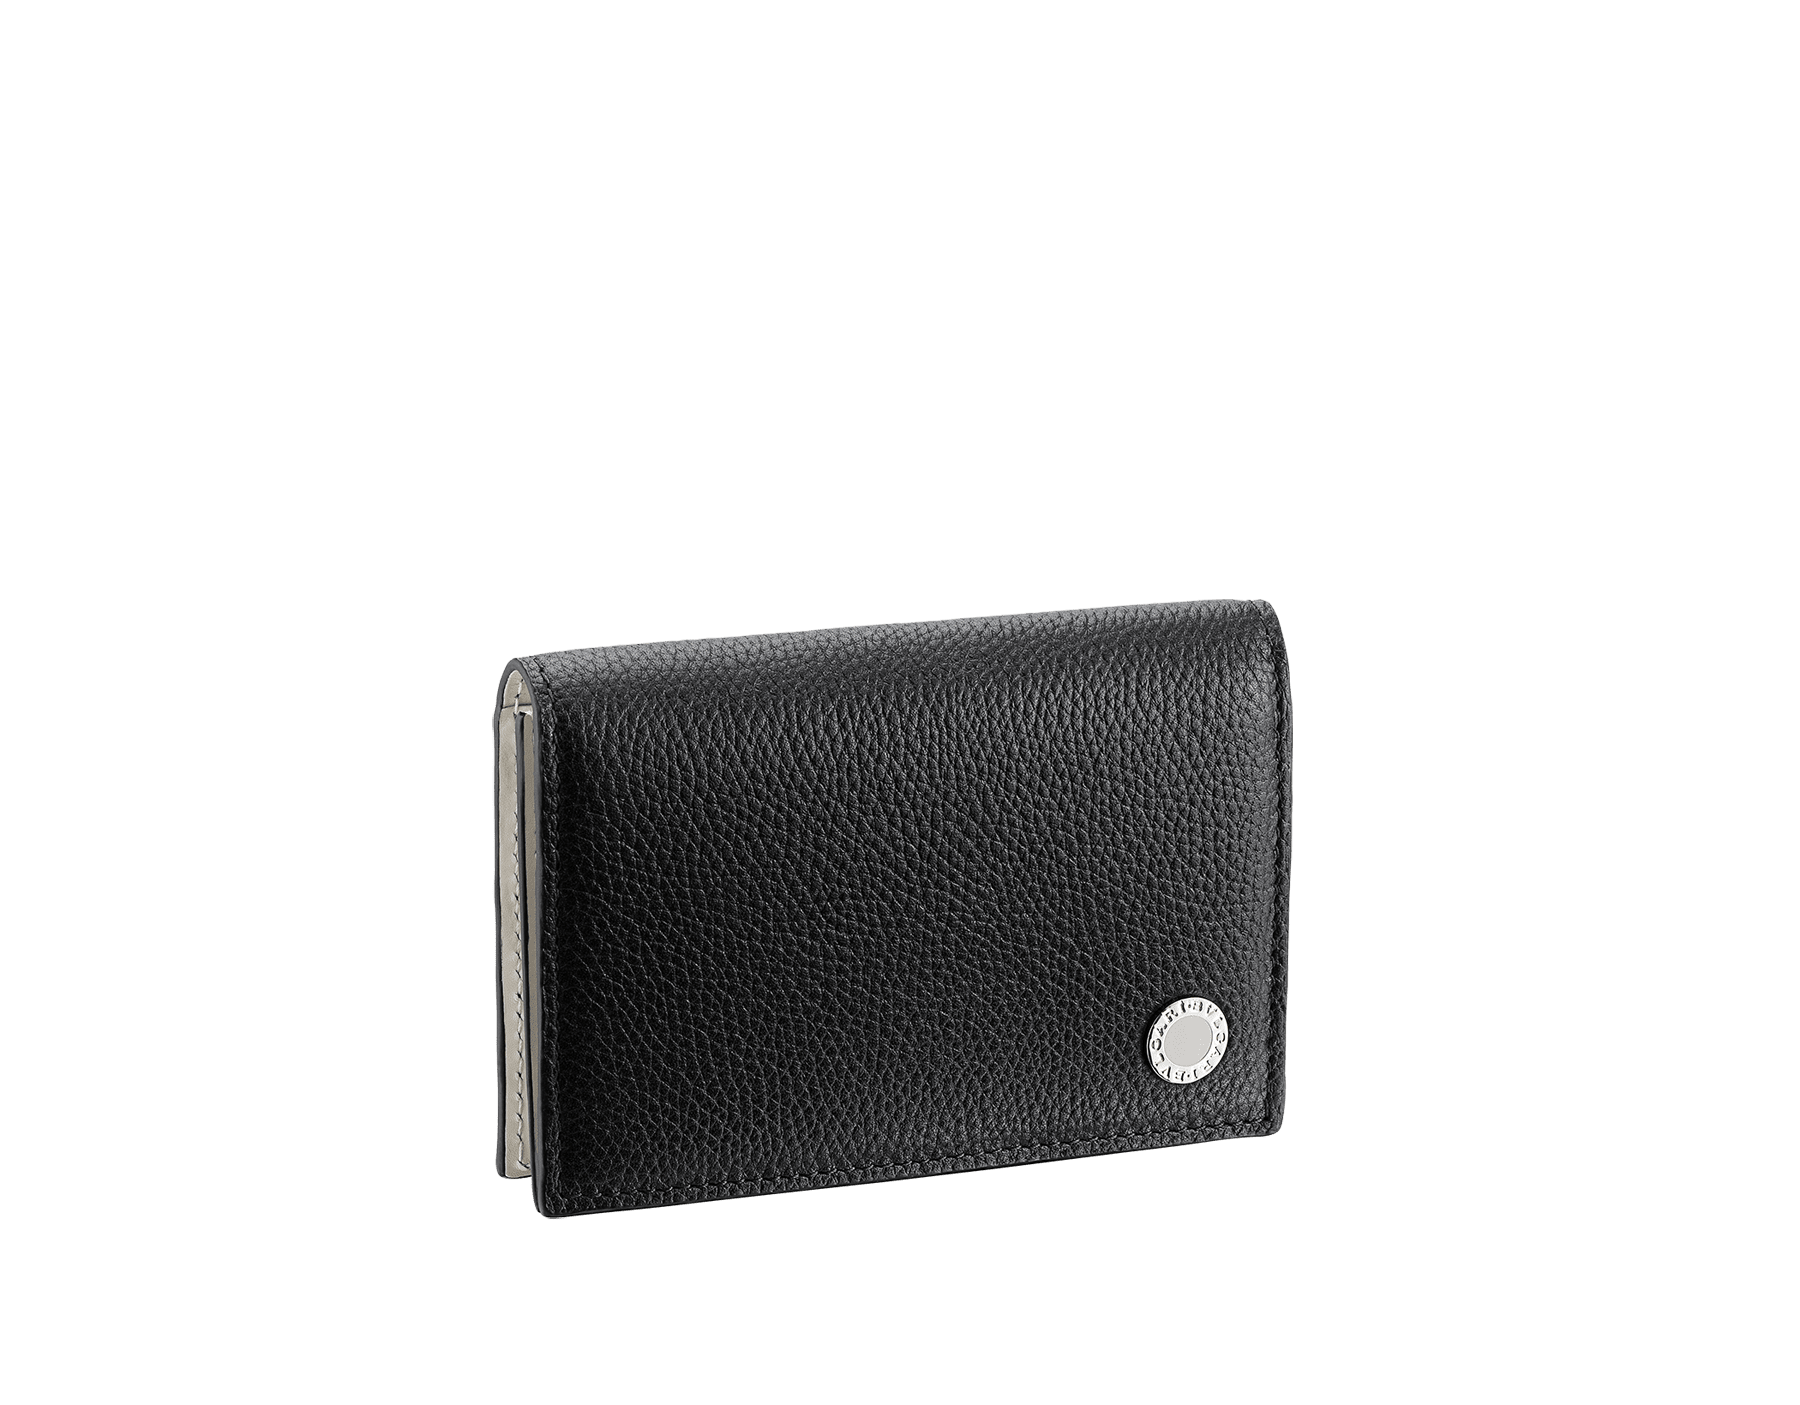 """BVLGARI BVLGARI"" business card holder in black soft full grain calf leather and white agate calf leather, with brass palladium plated logo décor coloured in white agate enamel. 290081 image 1"